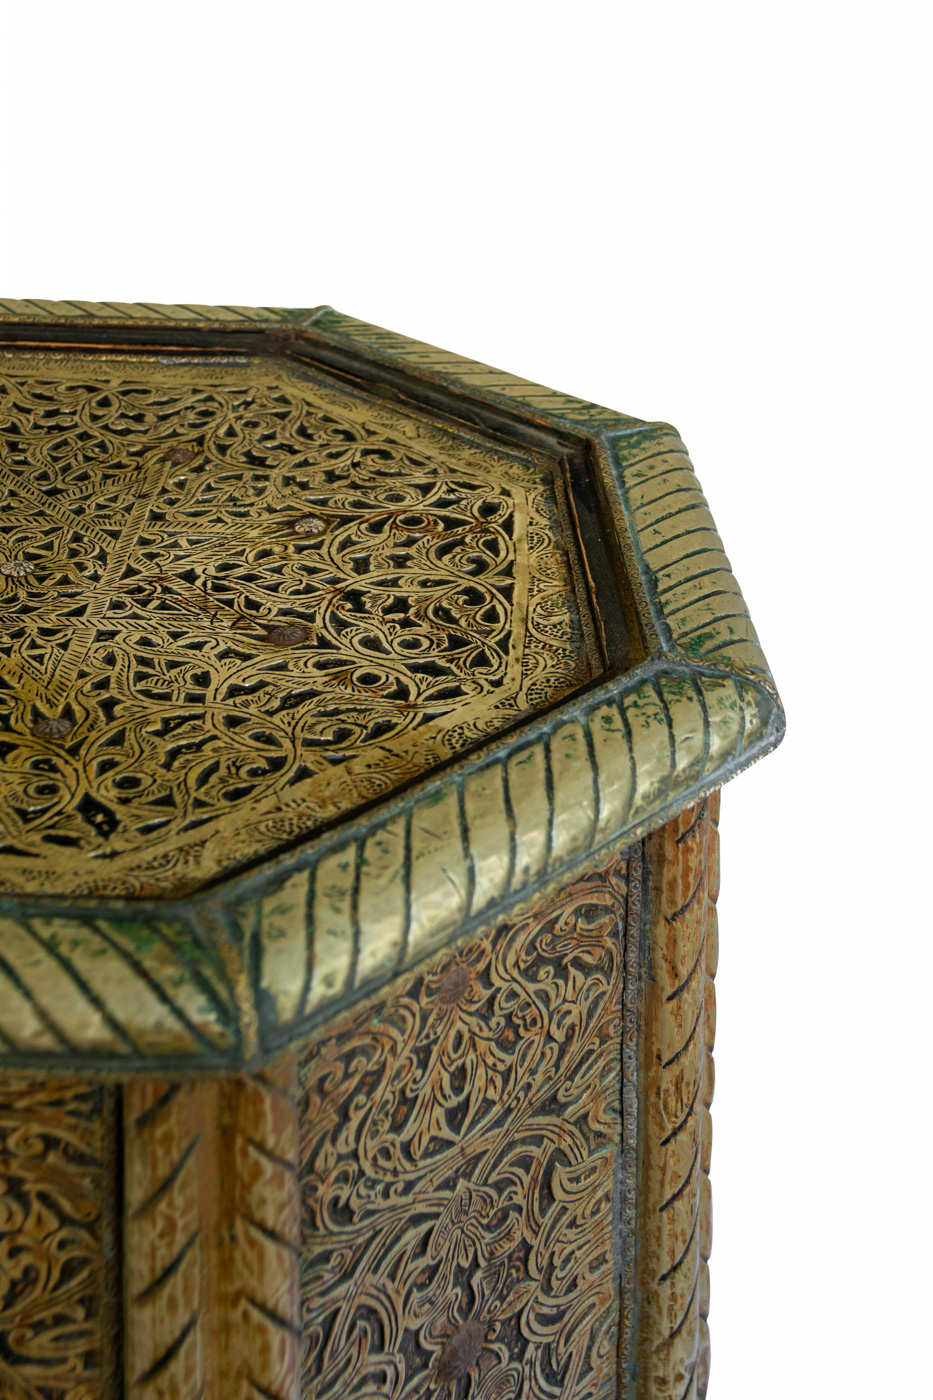 Moroccan side table in wood and sheet metal, 46 Cm